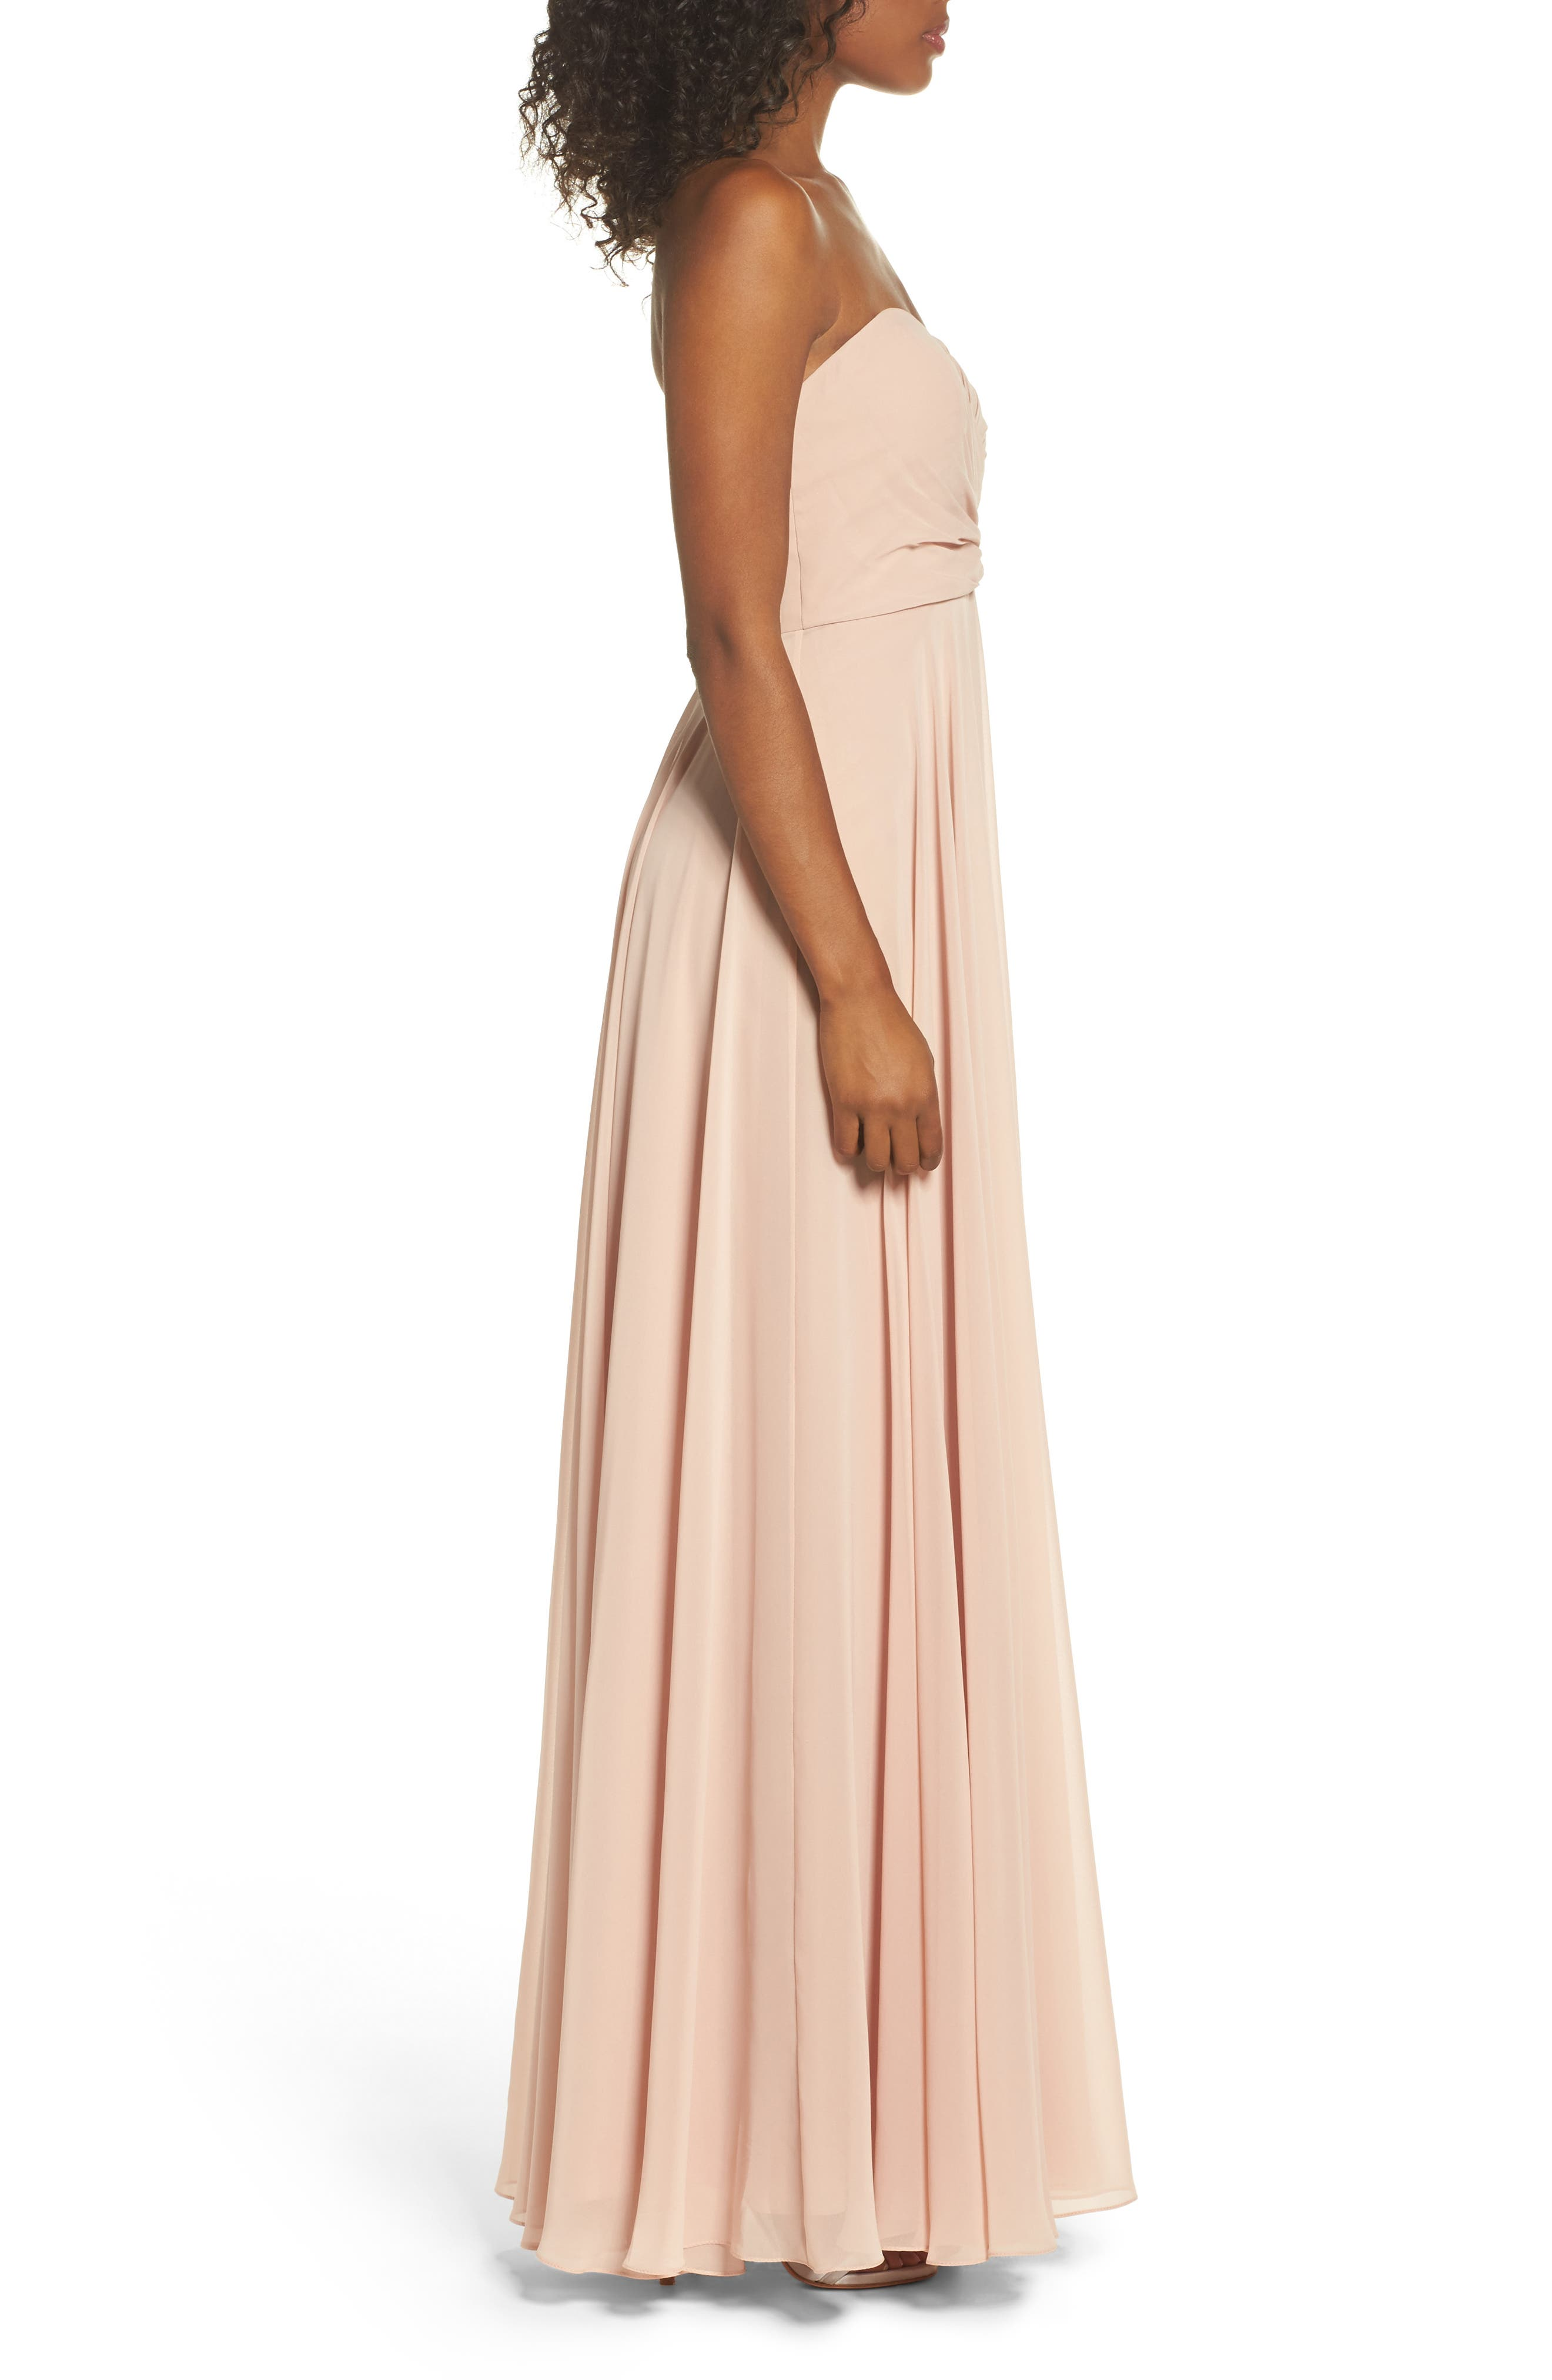 Adeline Strapless Chiffon Gown,                             Alternate thumbnail 3, color,                             Desert Rose